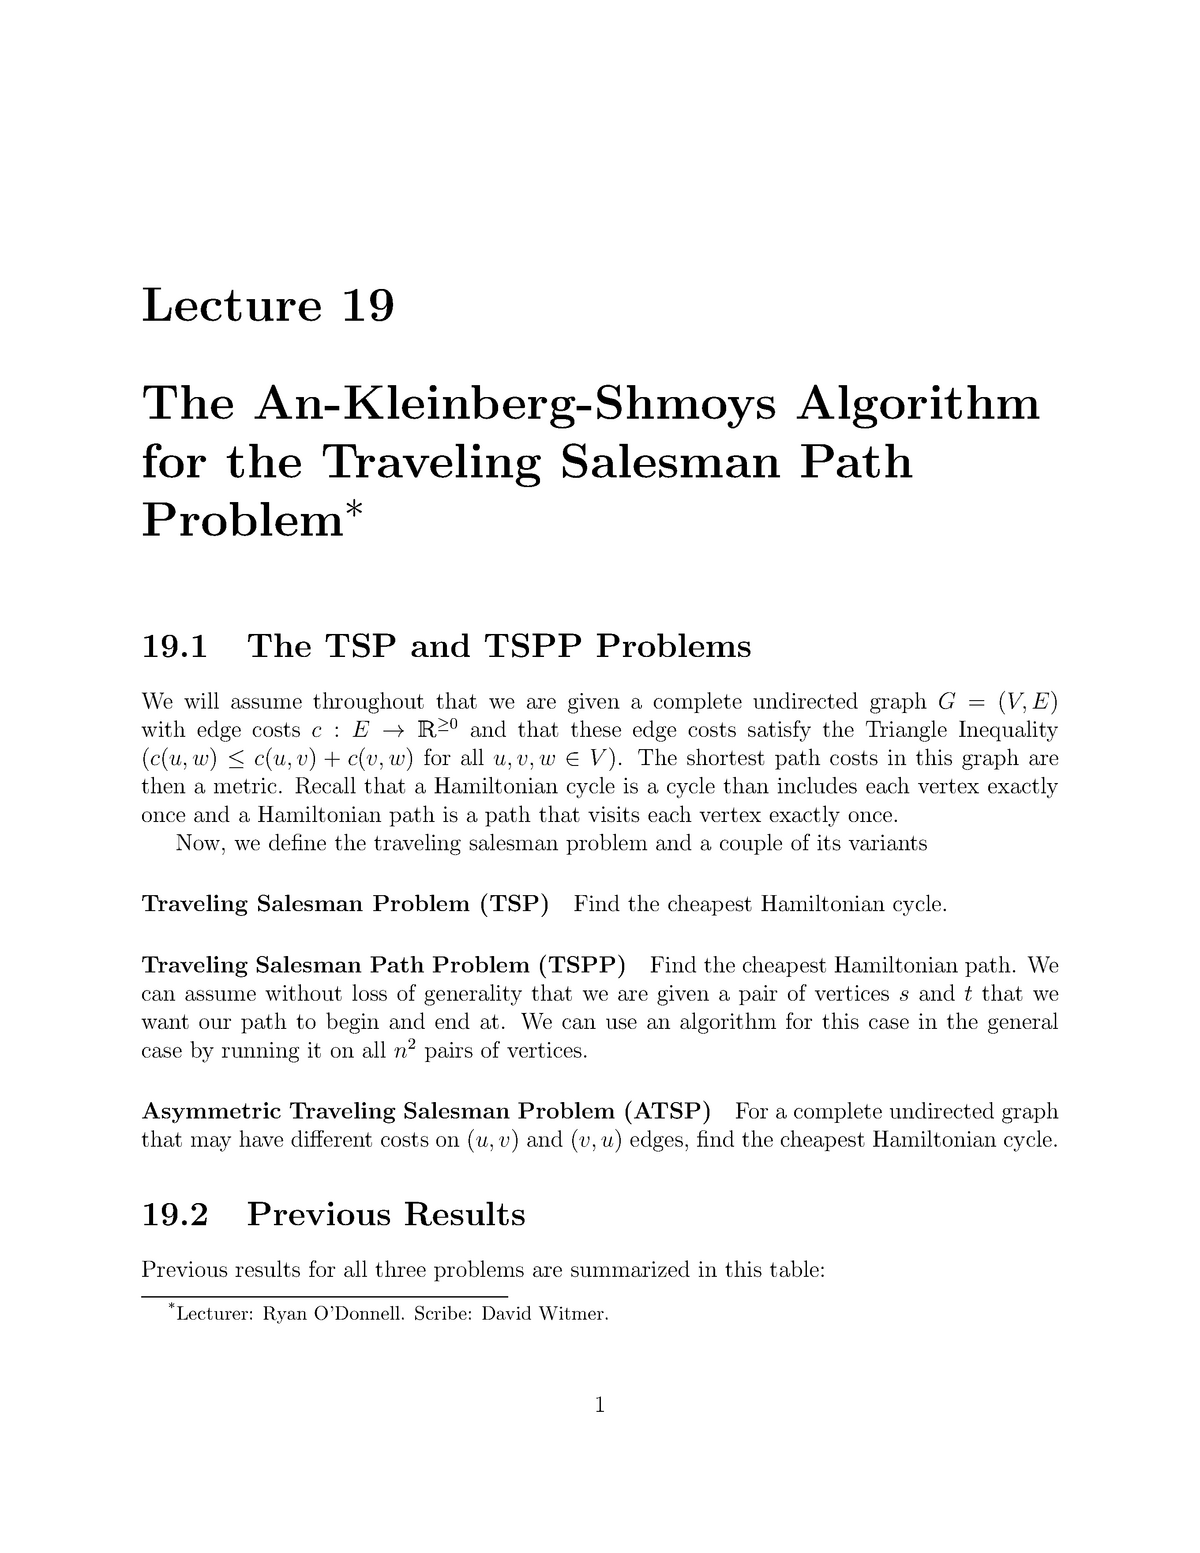 Lecture 19 - Linear and Semidefinite Programming by Anupam